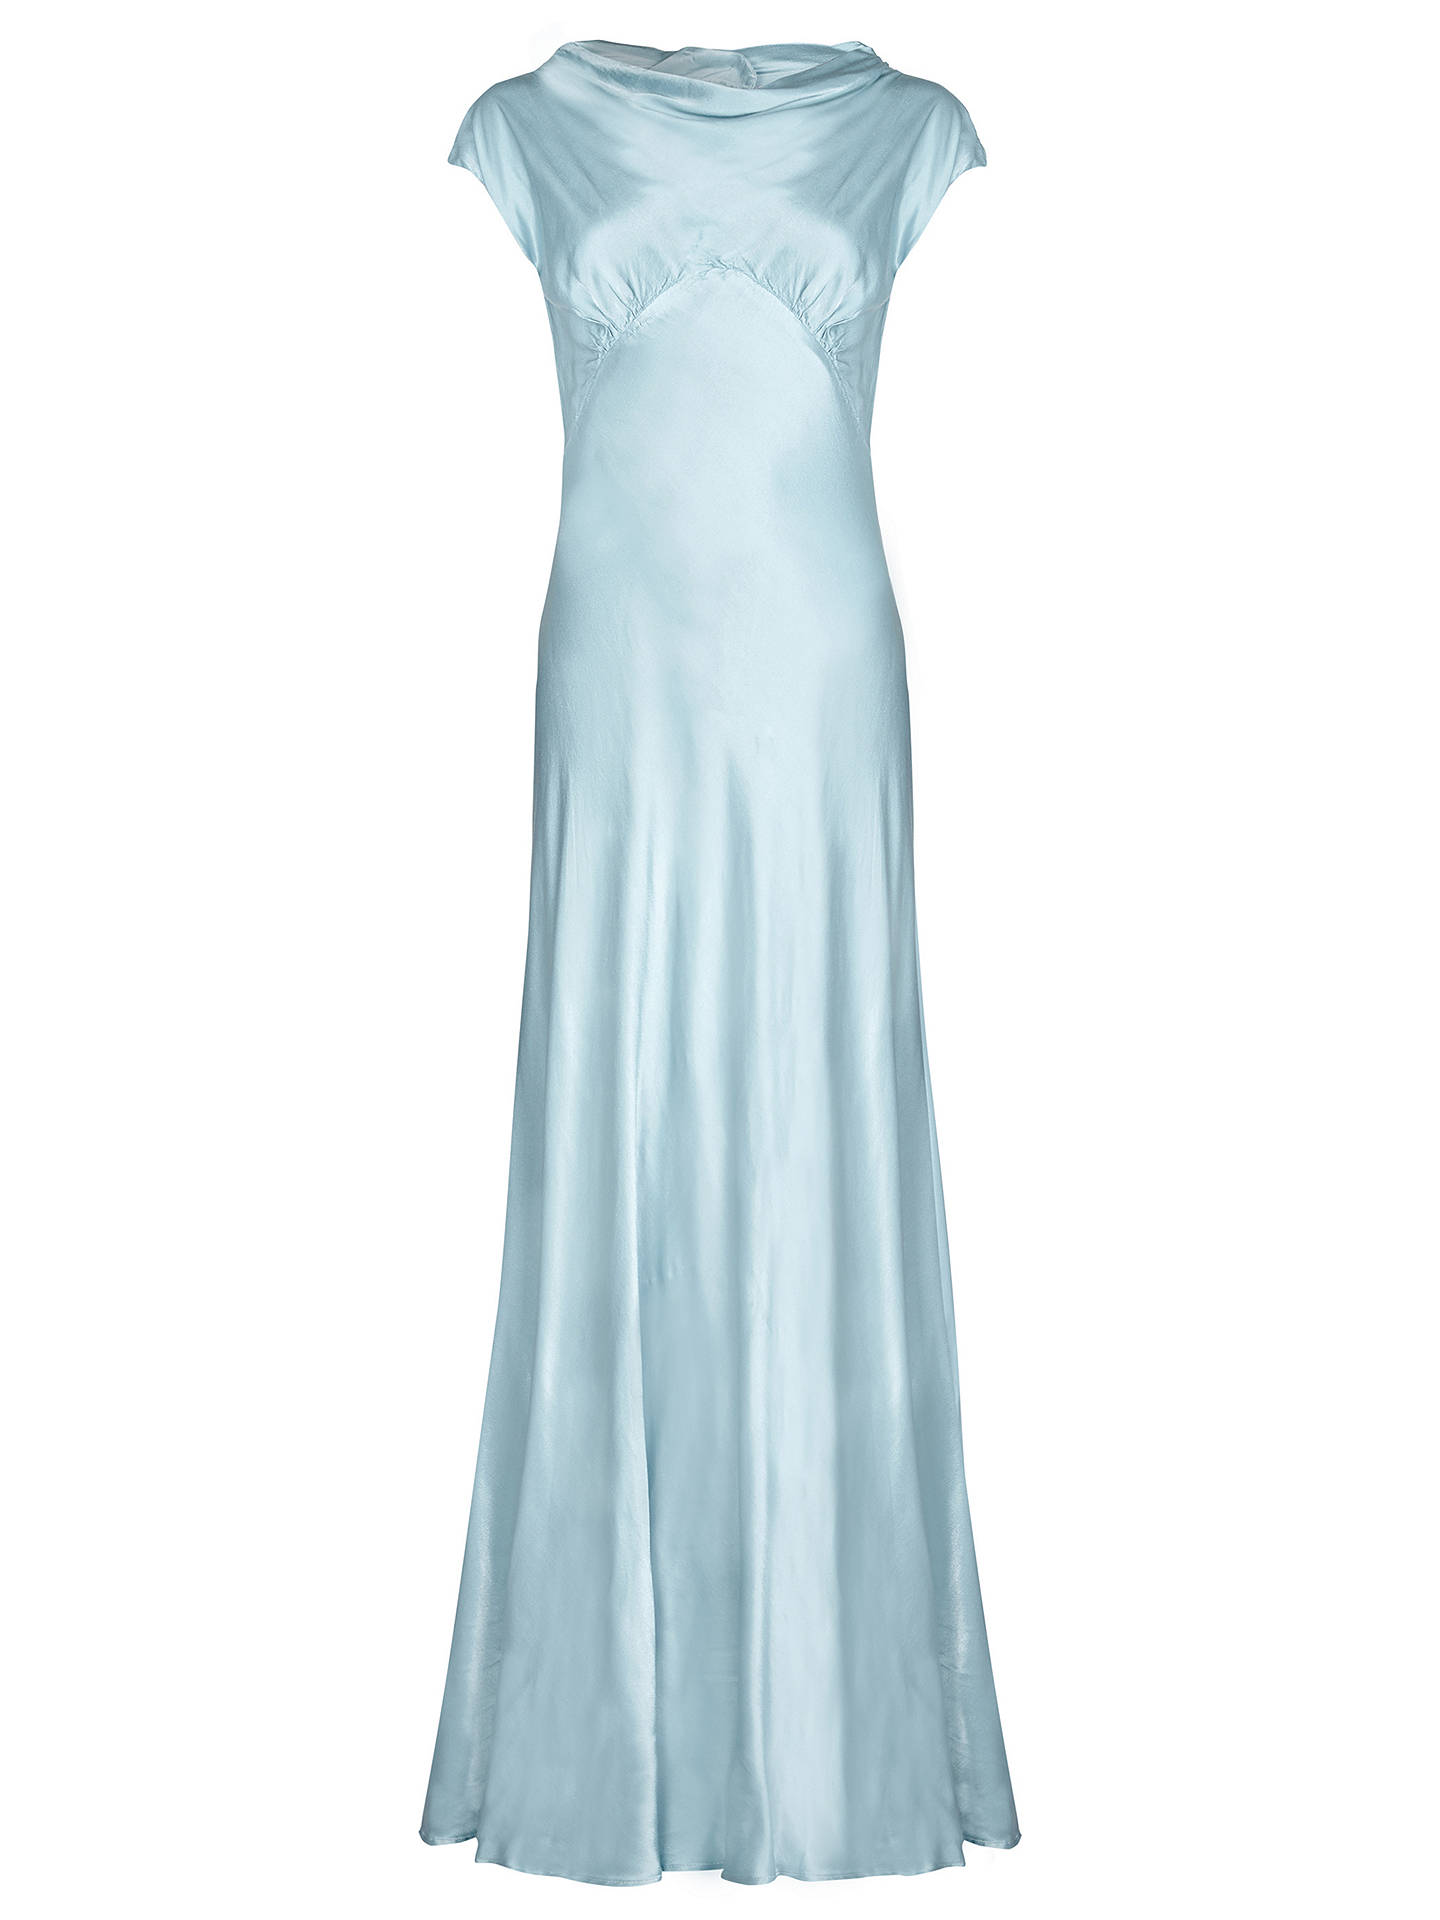 fa59a580ad0c ... Buy Ghost Lyra Dress, Skylight, XS Online at johnlewis.com ...